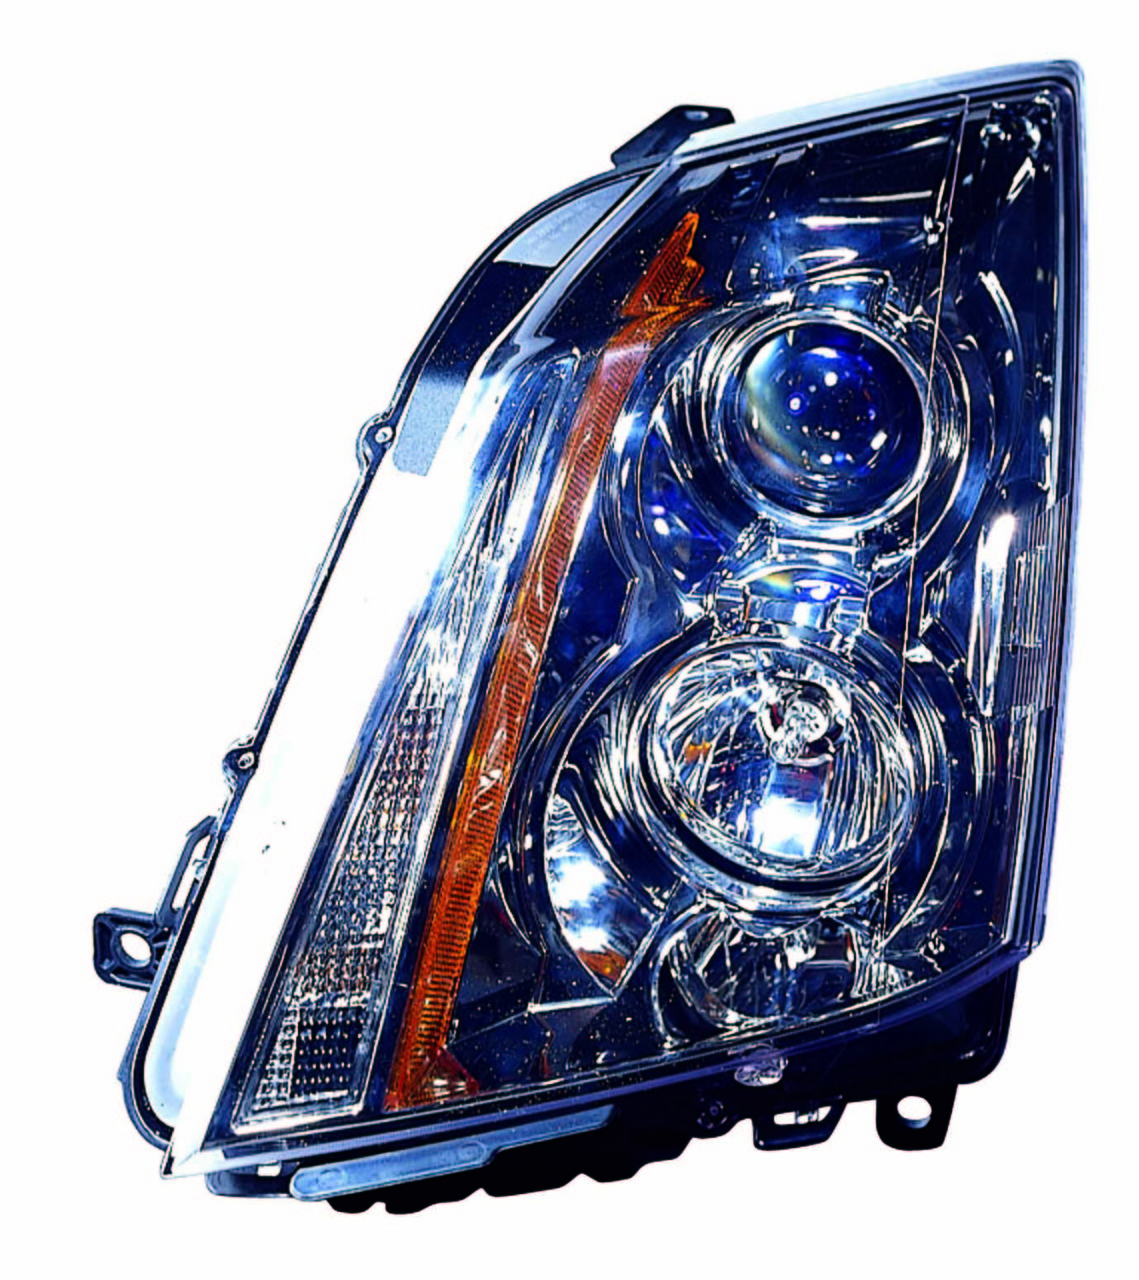 Cadillac CTS 2008 2009 2010 2011 2012 2013 2014 left driver headlight